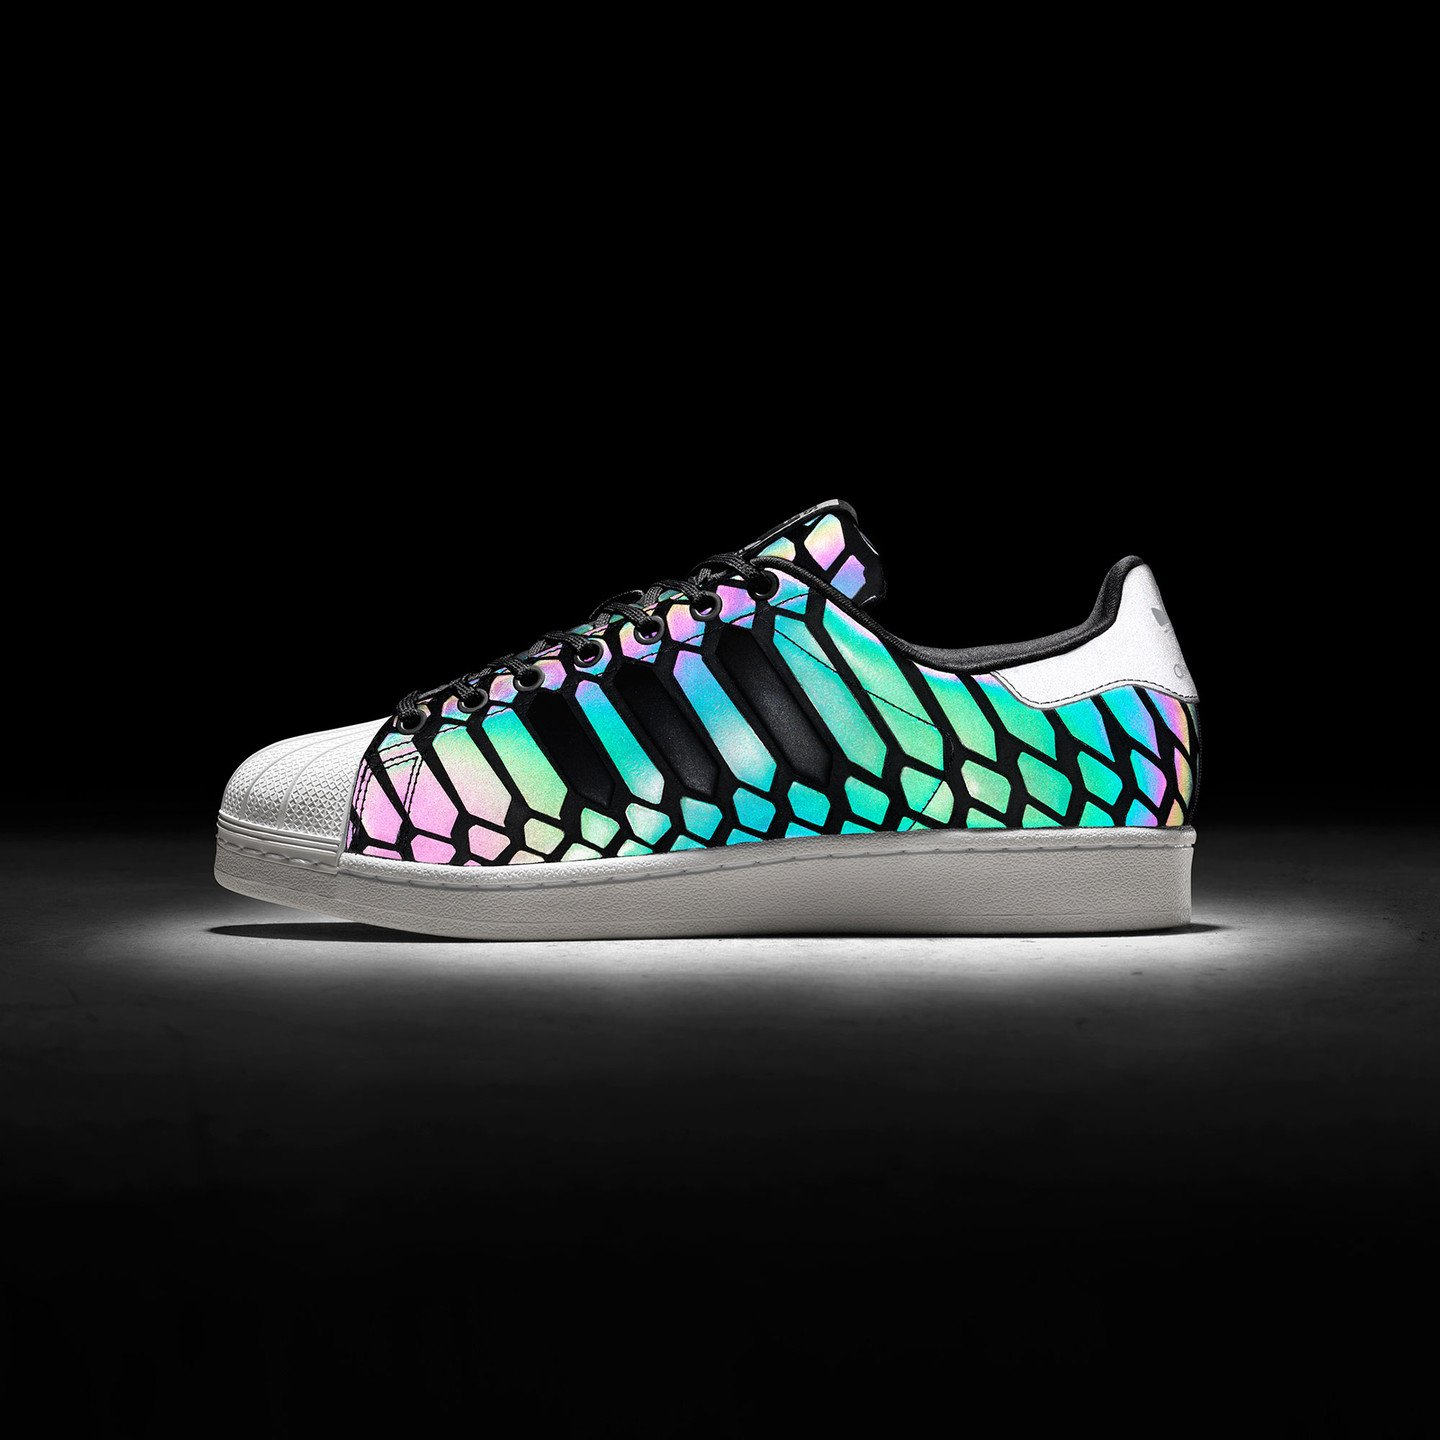 Adidas Superstar Xeno Pack Cblack / Supcol / Ftwwht D69366-36.66